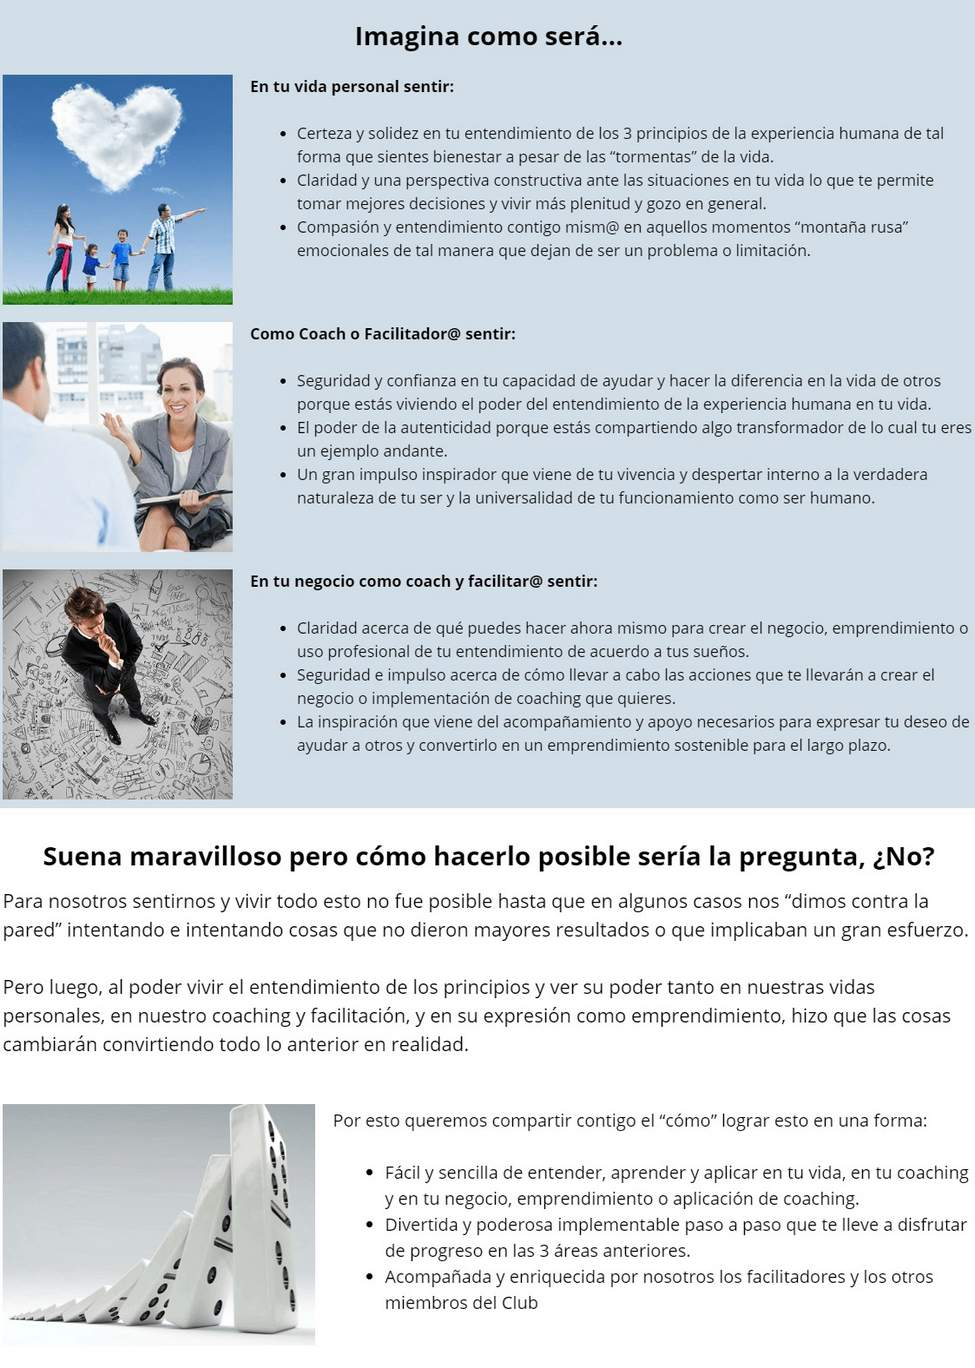 Club de Impacto Exponencial, International Coaching Group, aprender coaching, curso de coaching, club de coaching, tecnicas de coaching, coaching con pnl, negocio de coaching,